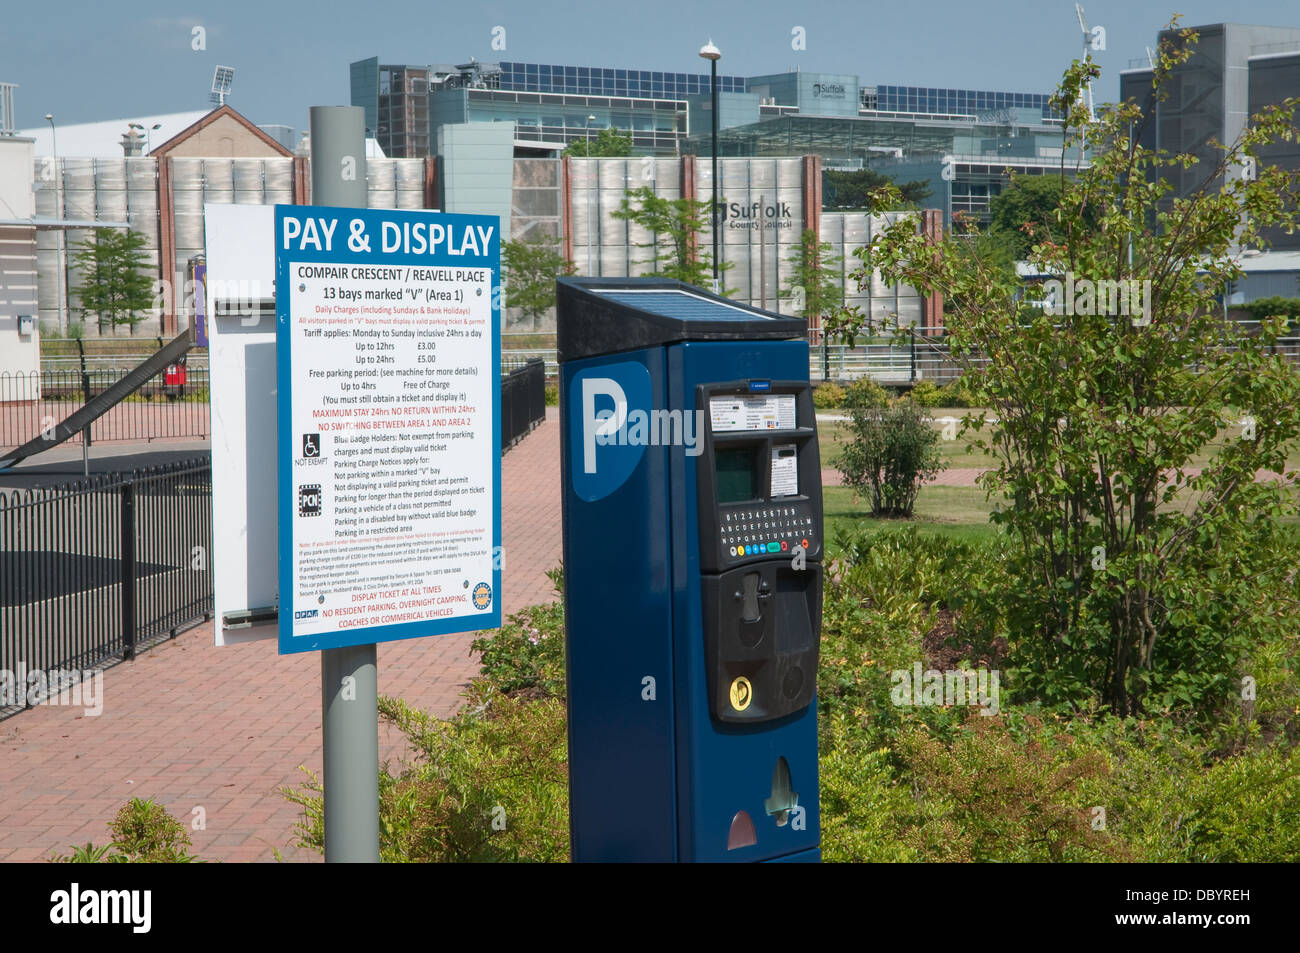 pay-and-display-ticket-machine-in-ipswic